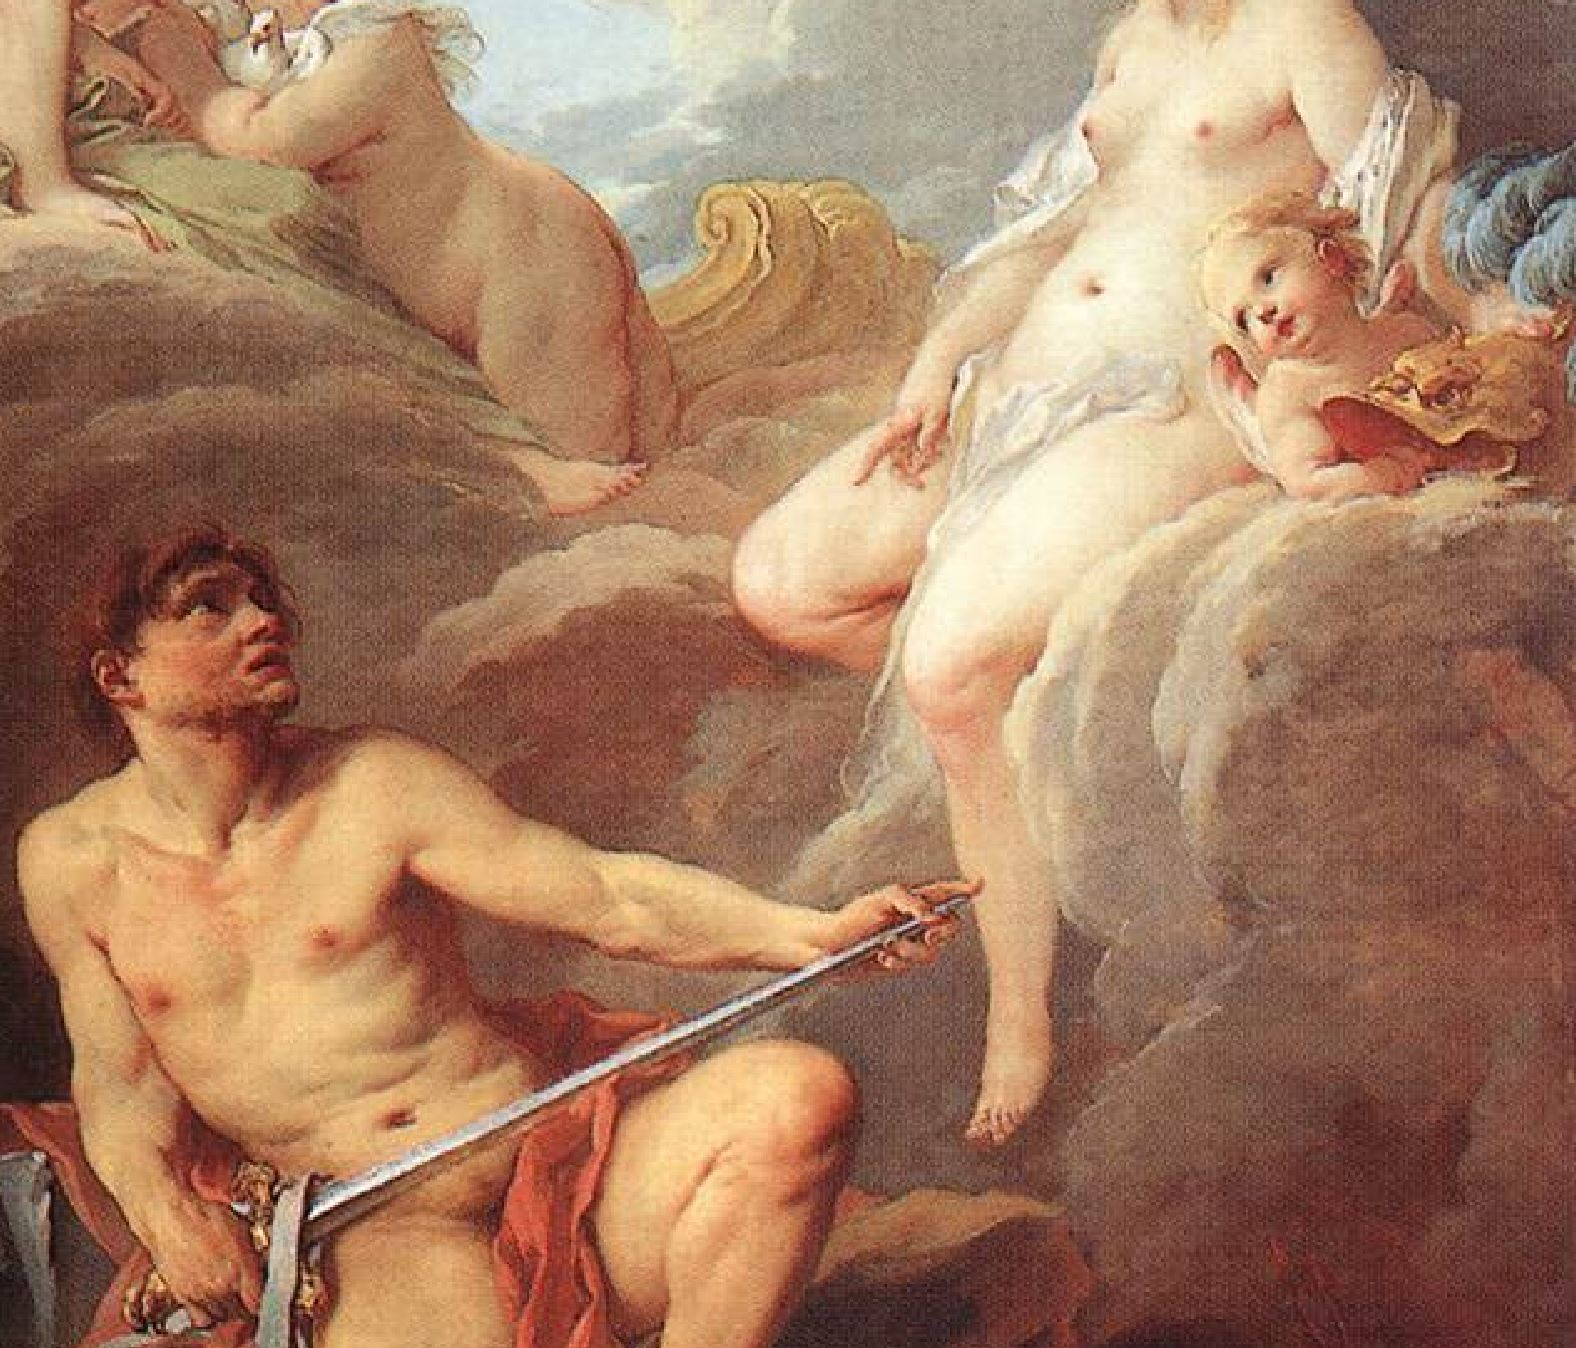 Boucher 1732 Venus_Demanding_Arms_from_Vulcan_for_Aeneas_-_WGA2900 Louvre detail